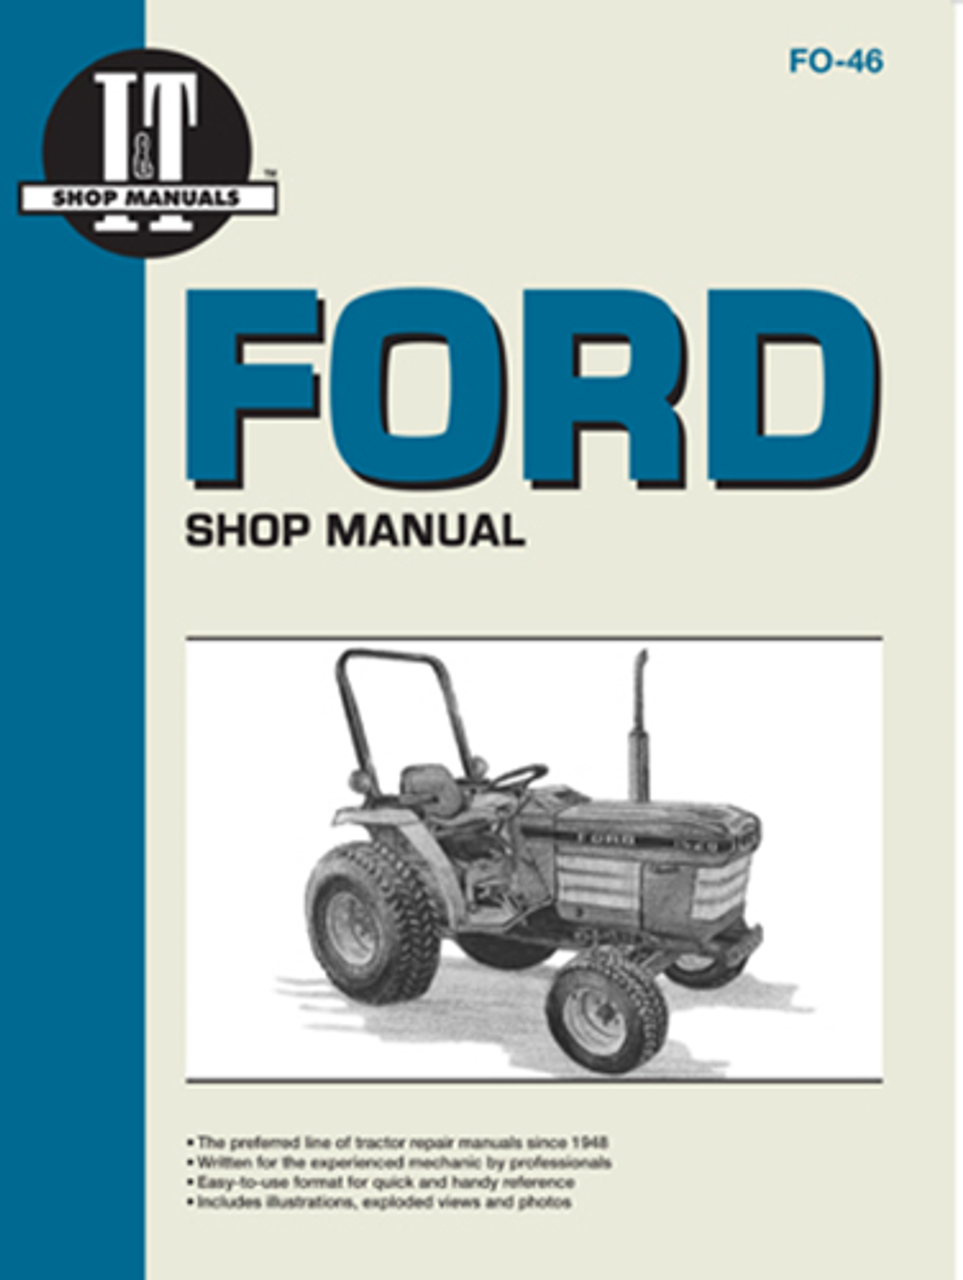 FORD/NEW HOLLAND - I&T SHOP REPAIR MANUAL - FO-46 on